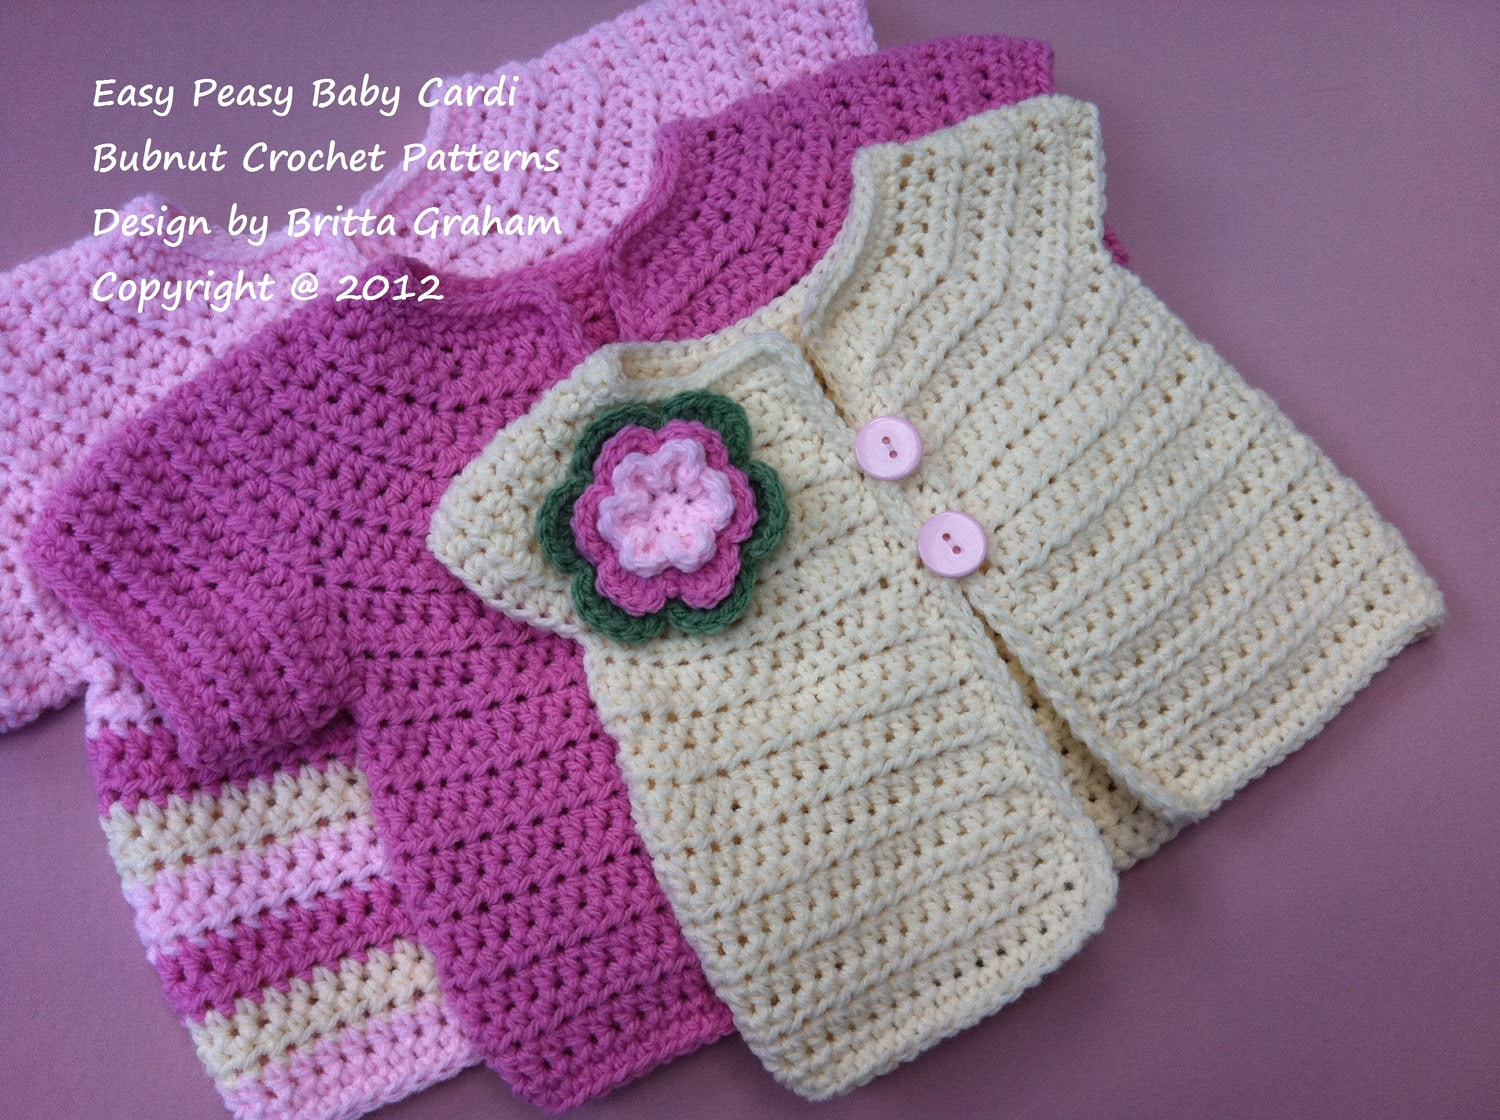 Crochet Baby Jacket Pattern Easy Peasy Cardigan Crochet